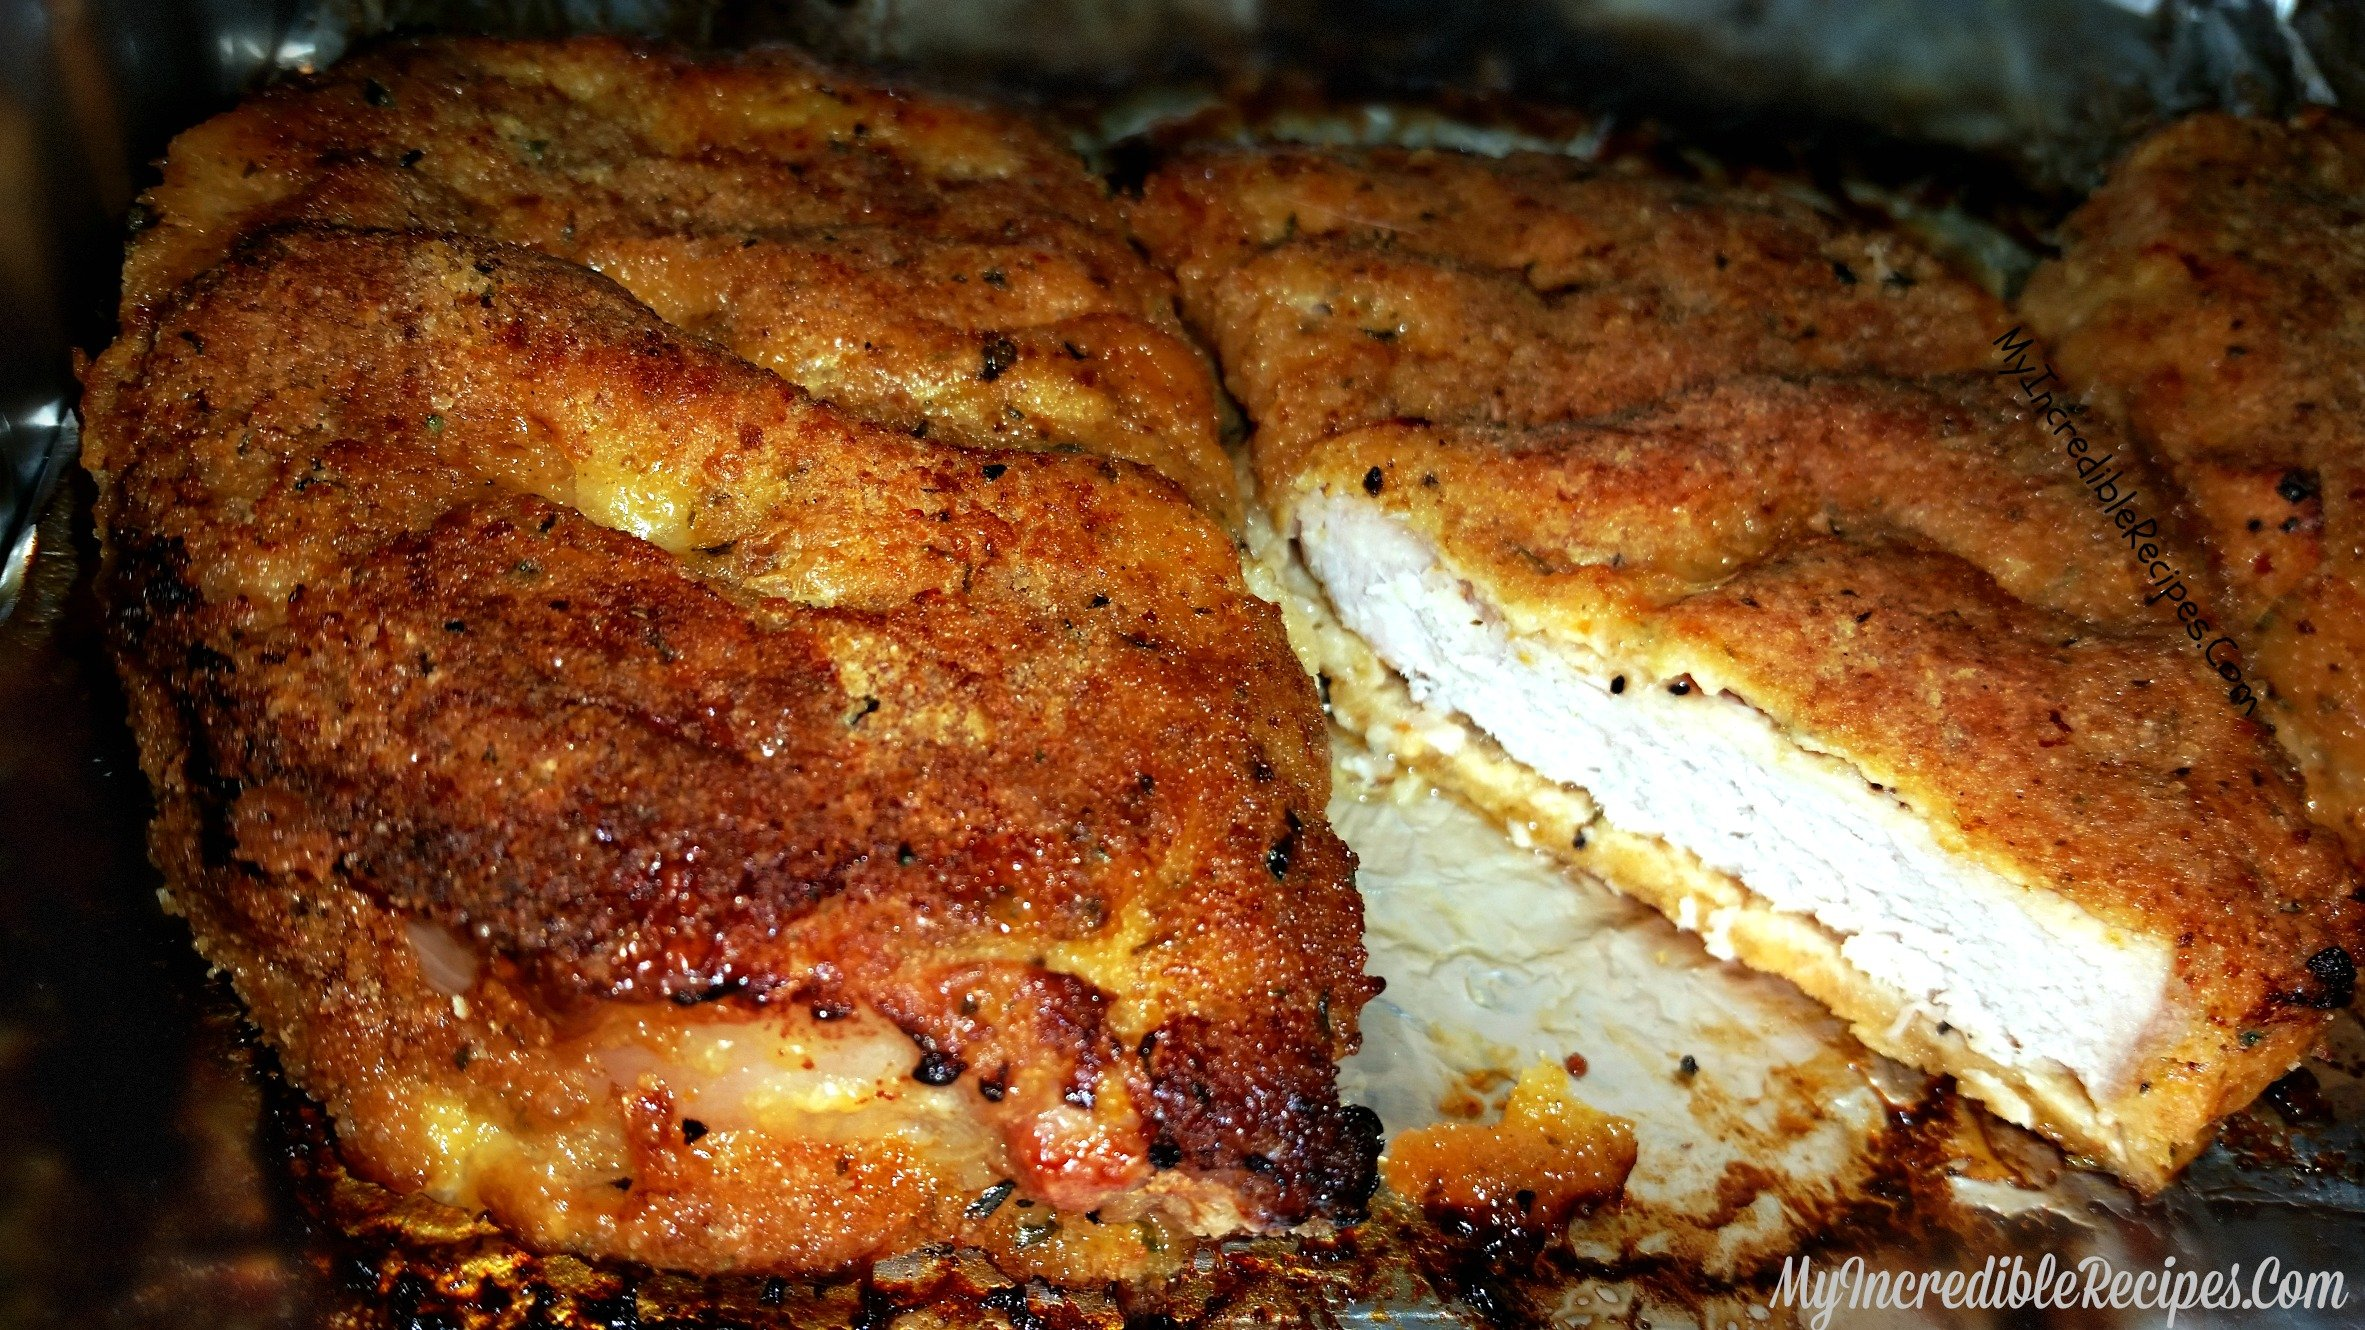 Delicious Baked Parmesan Crusted Pork Chops